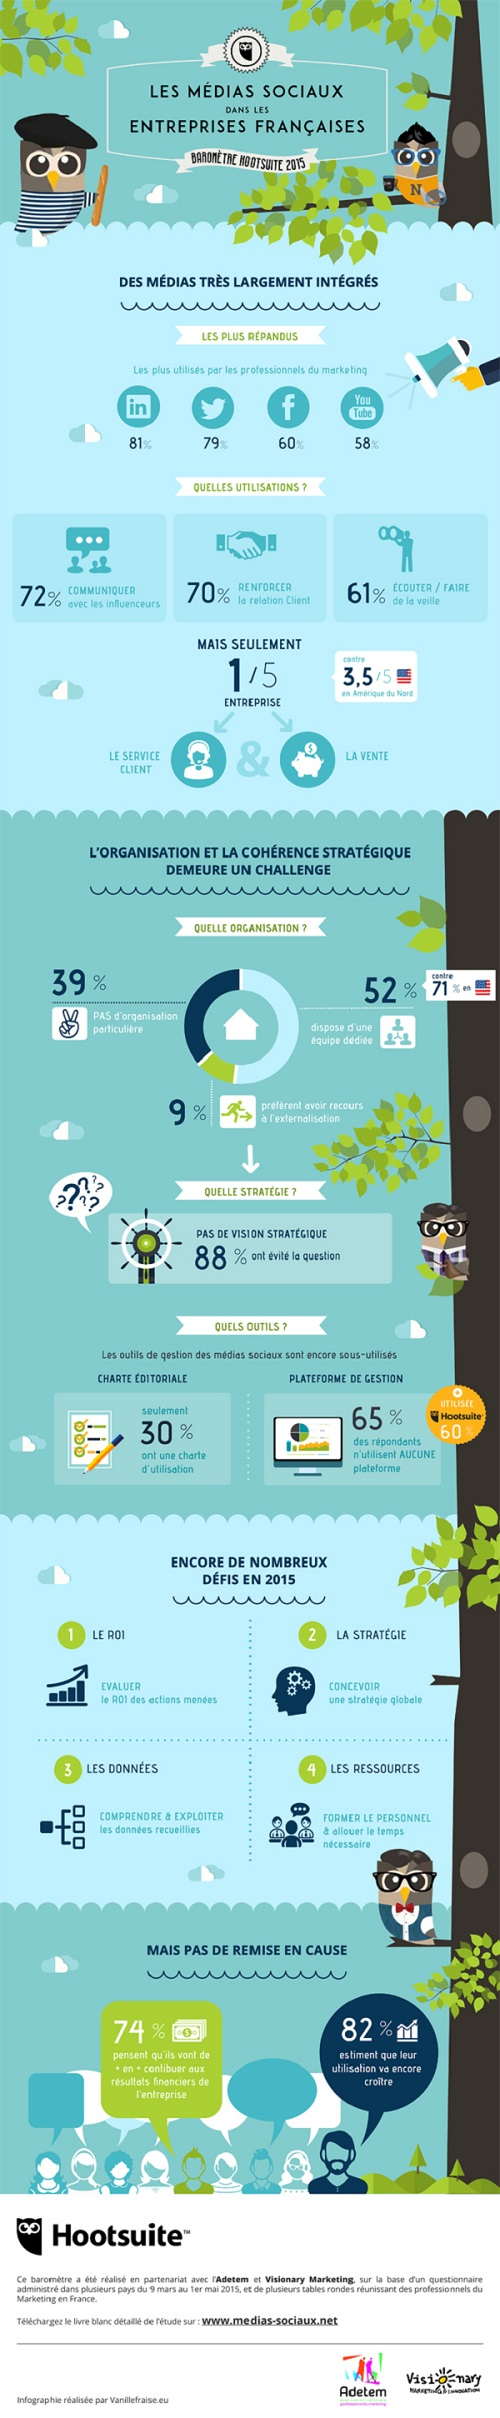 Infographie-hootsuite4